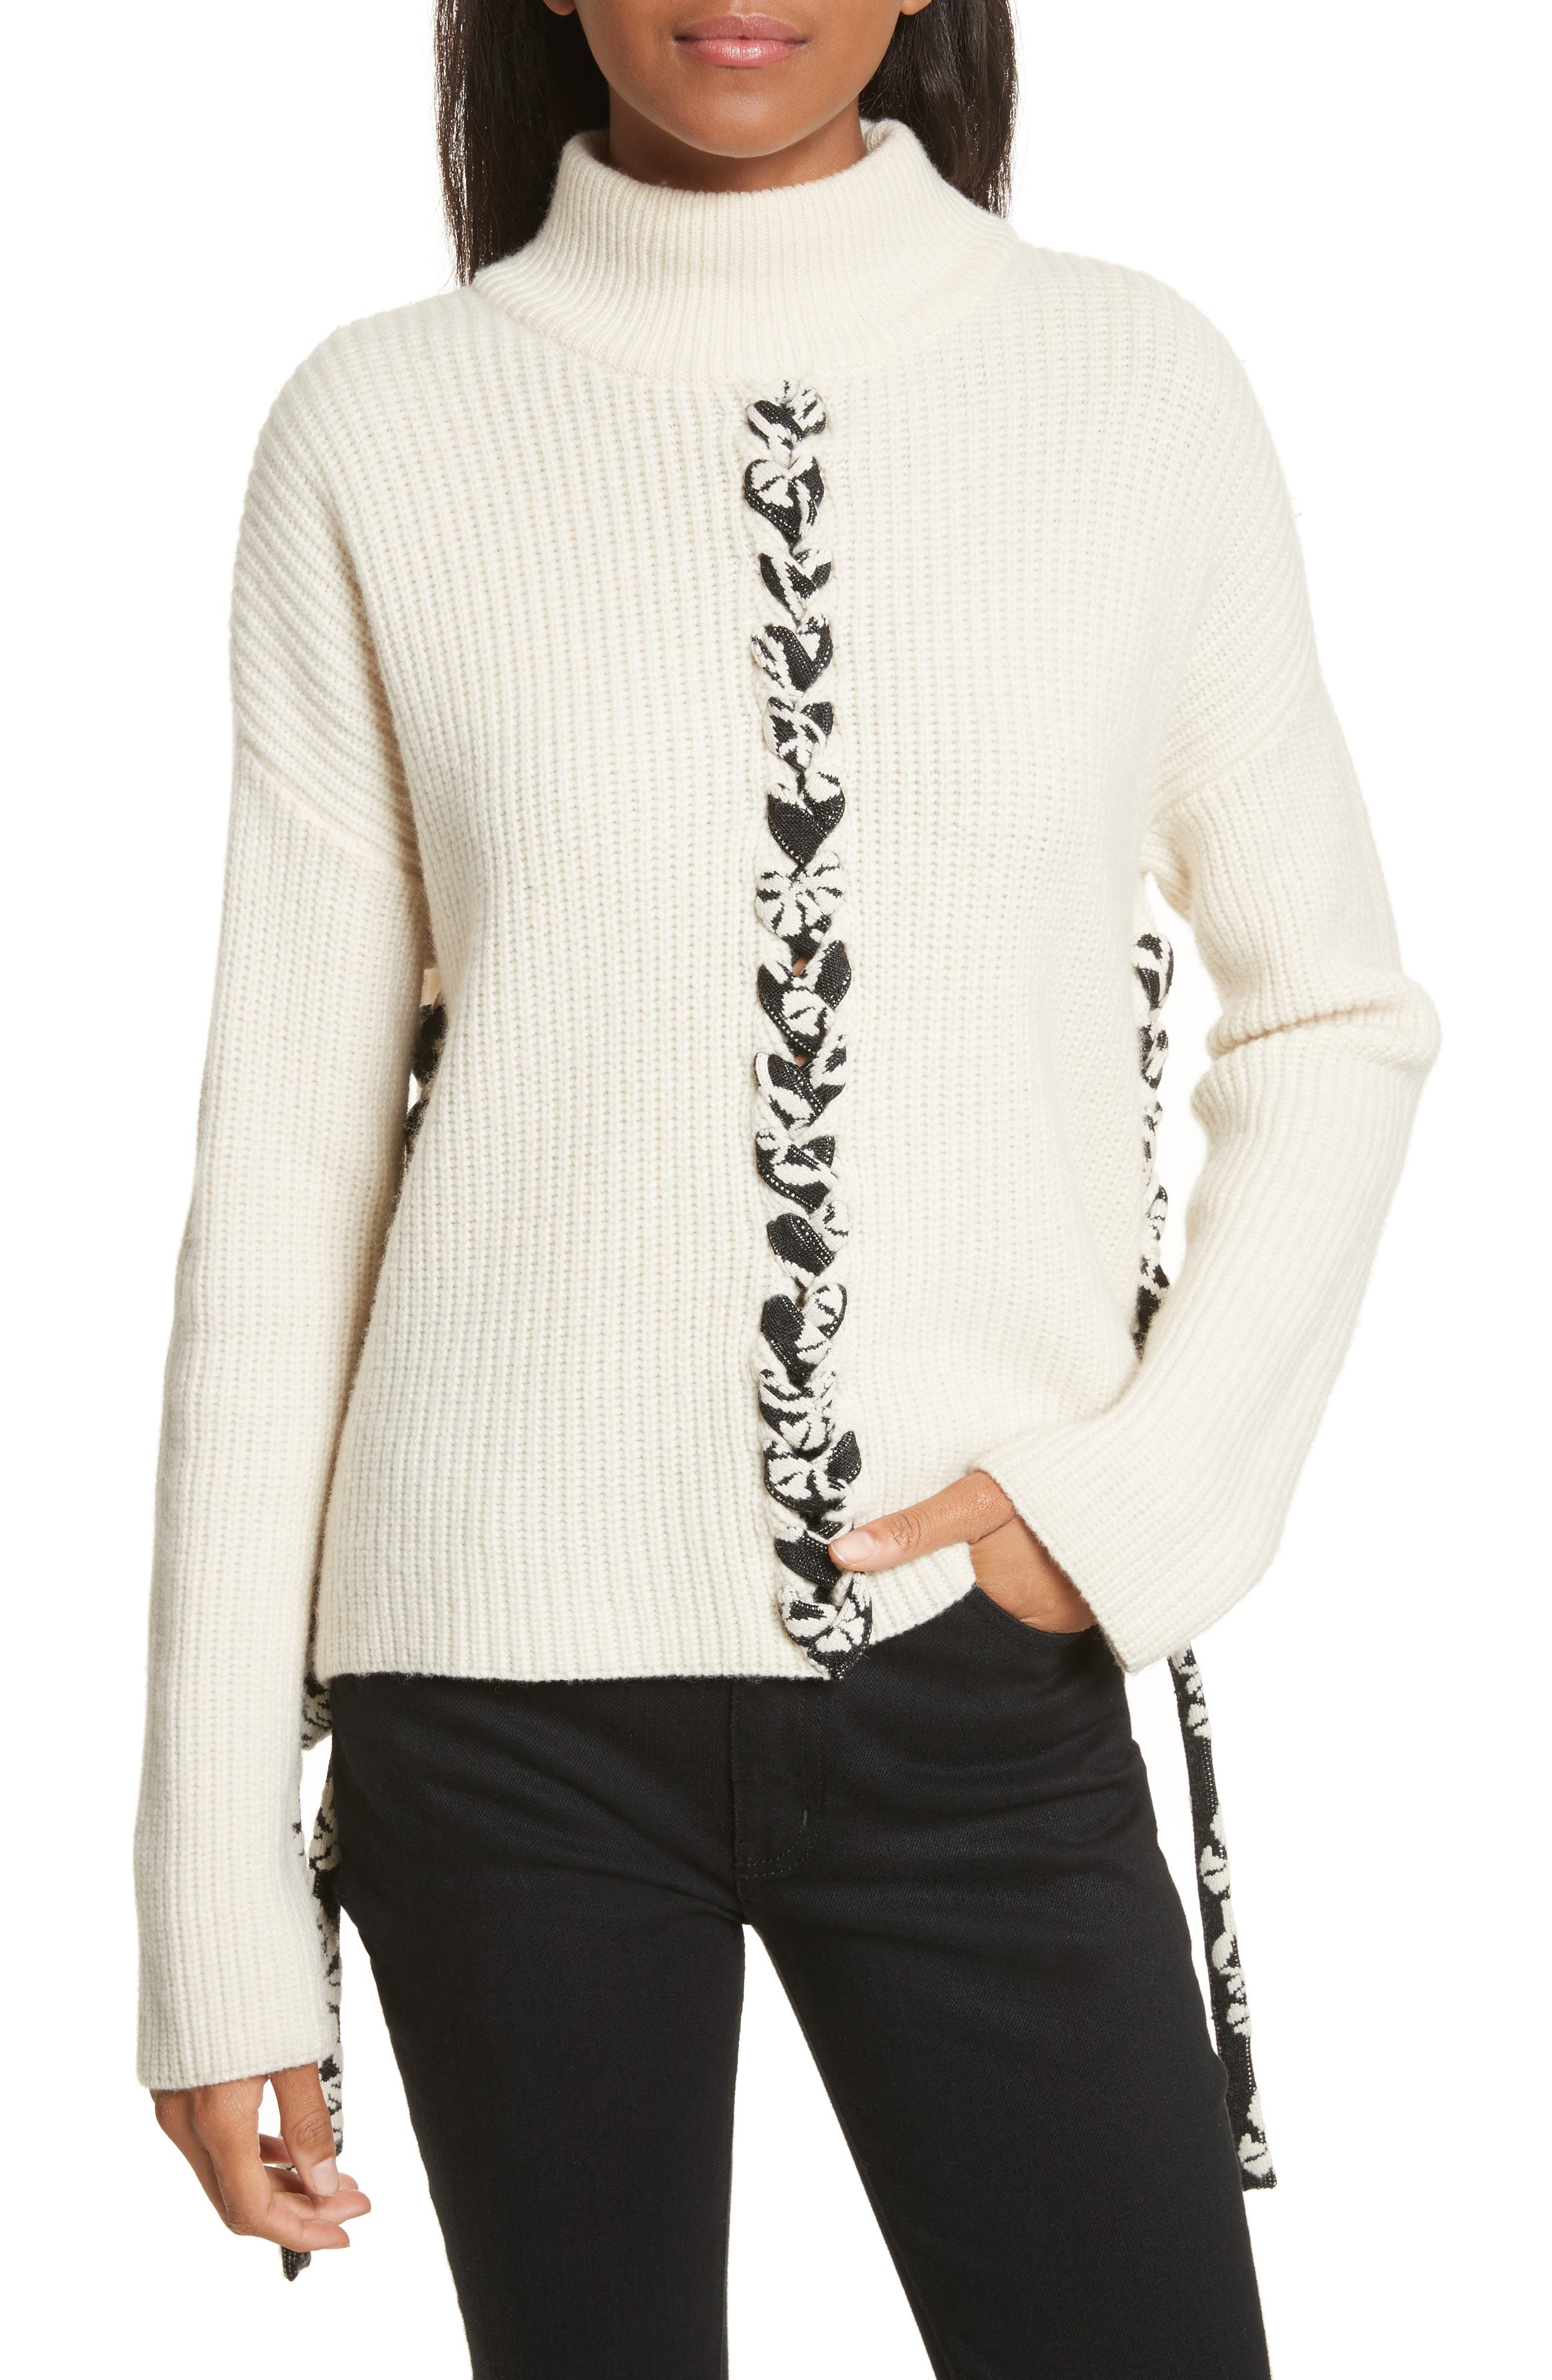 Mughal Lace-Up Sweater,                         Main,                         color, Off White W/ Jacquard Ties